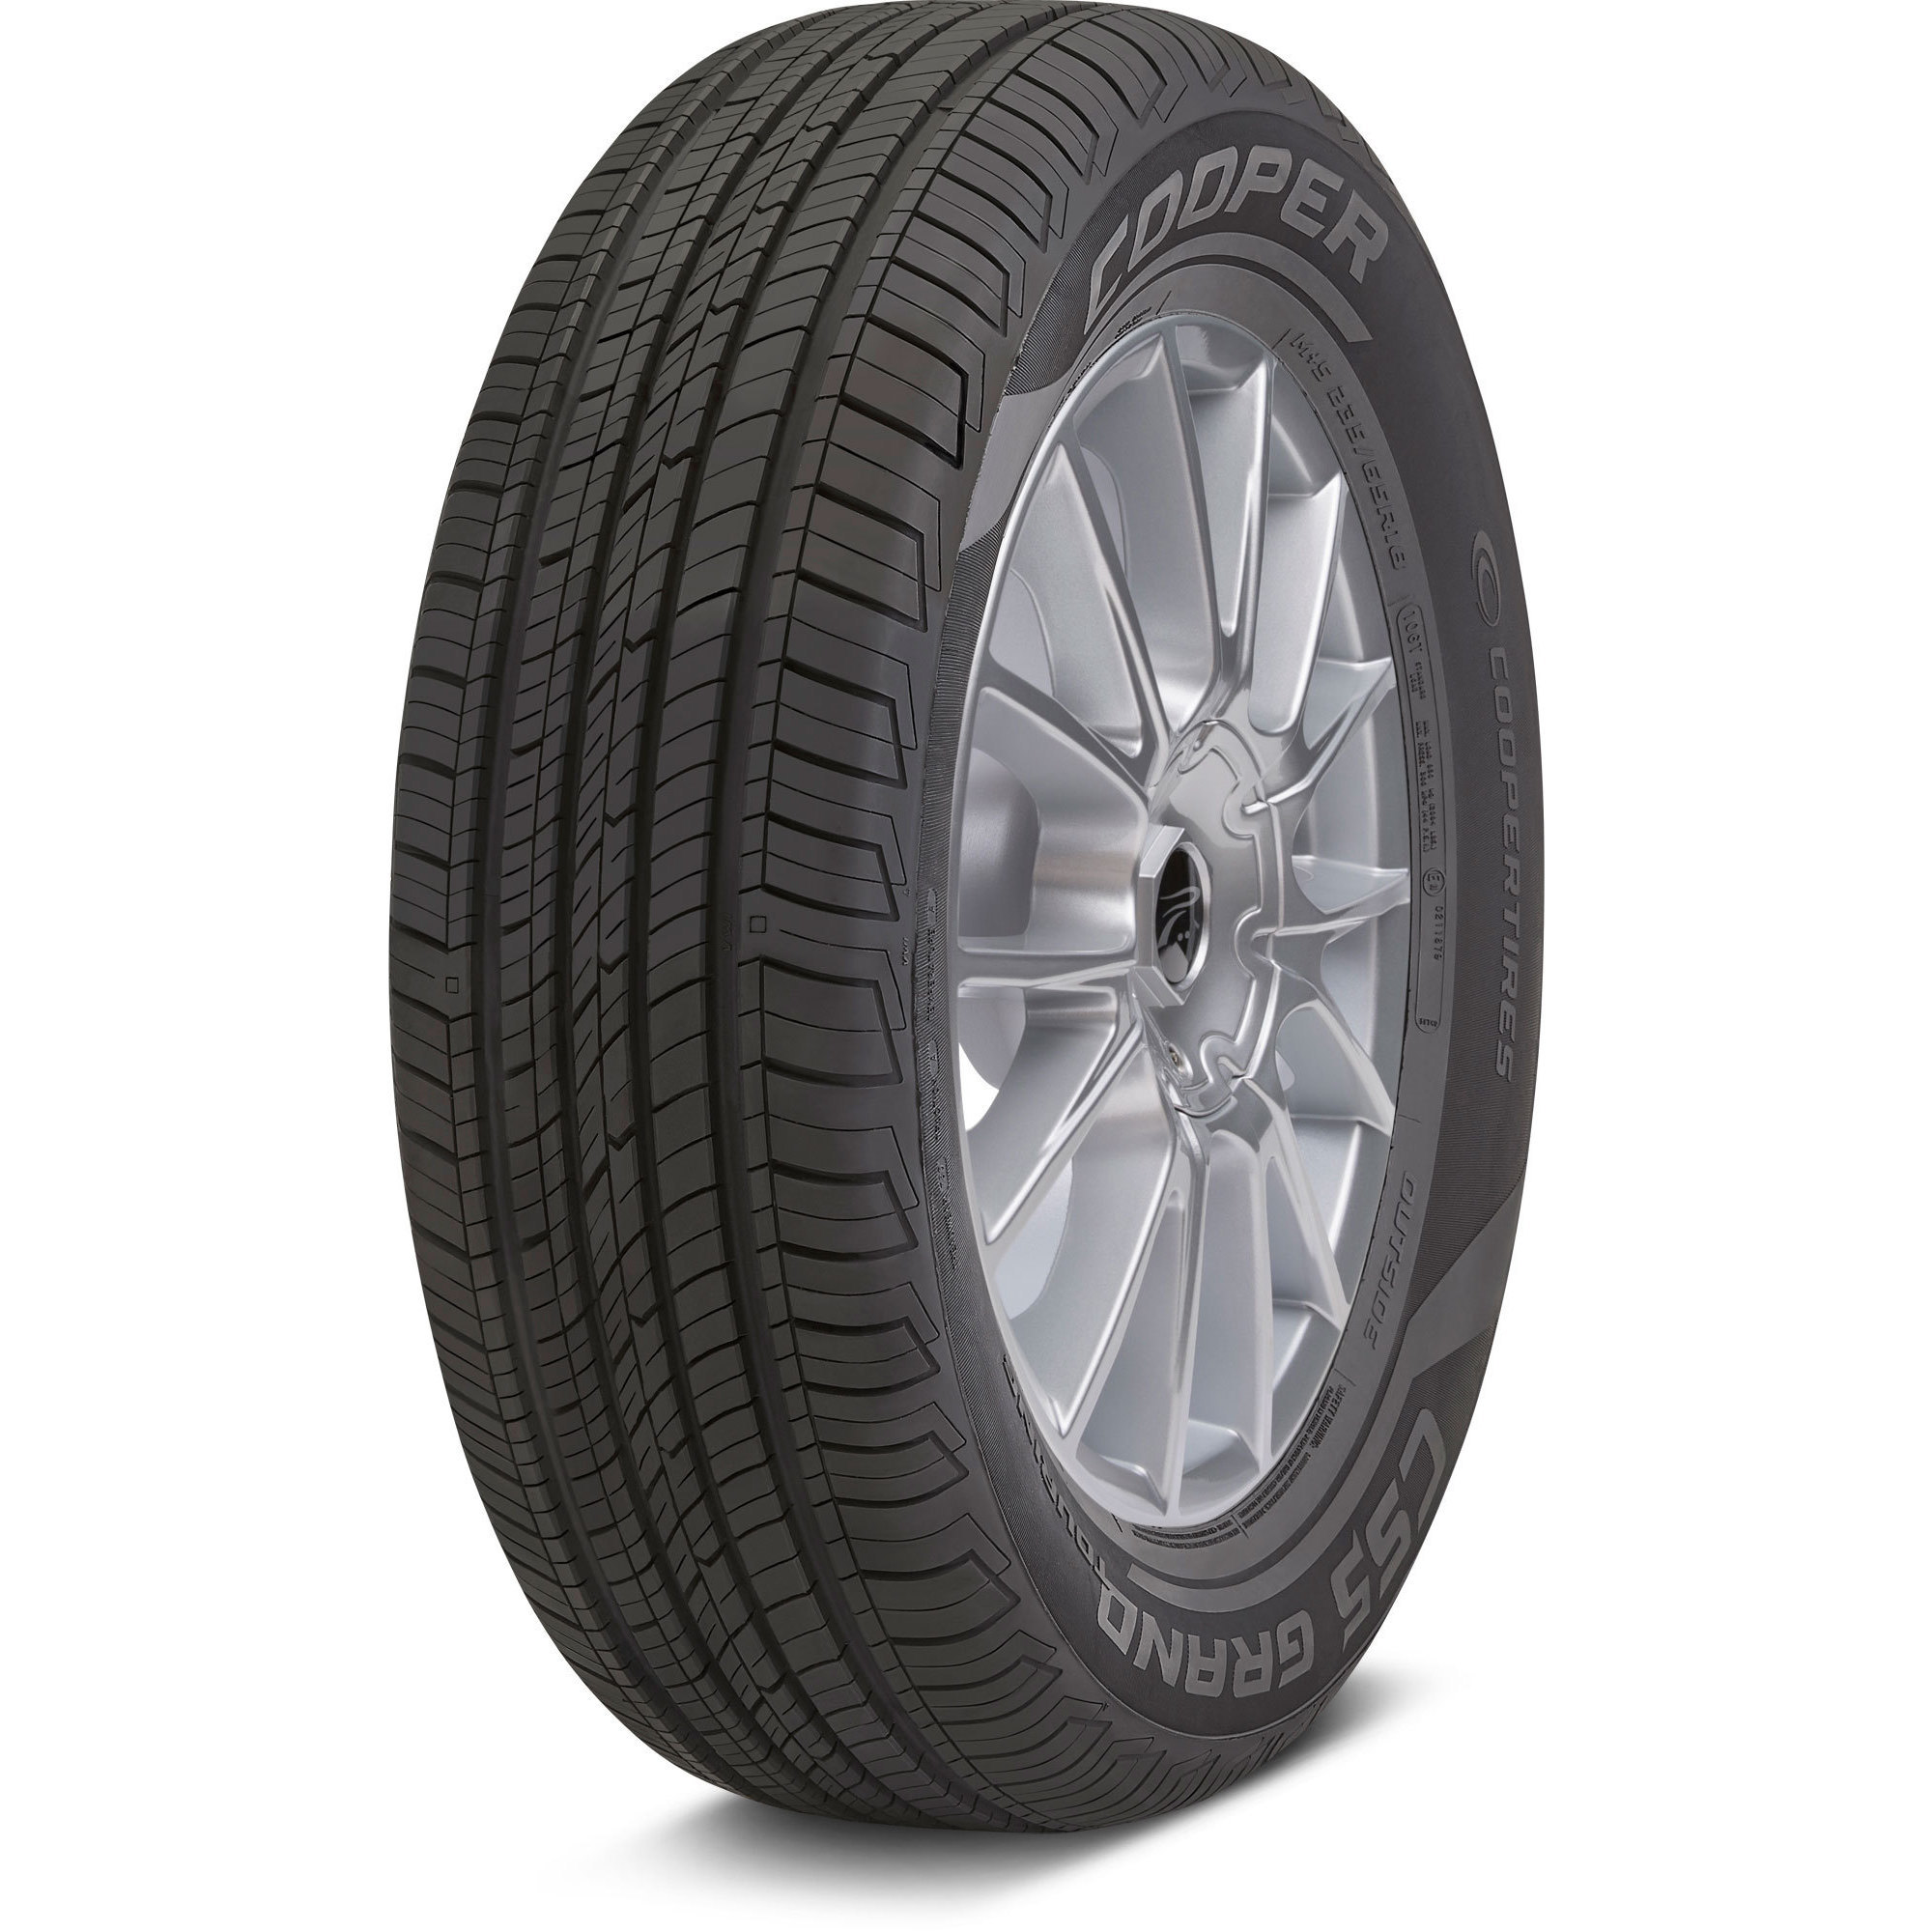 What Is Covered Under A Tire Warranty Tirebuyer Com Tirebuyer Com